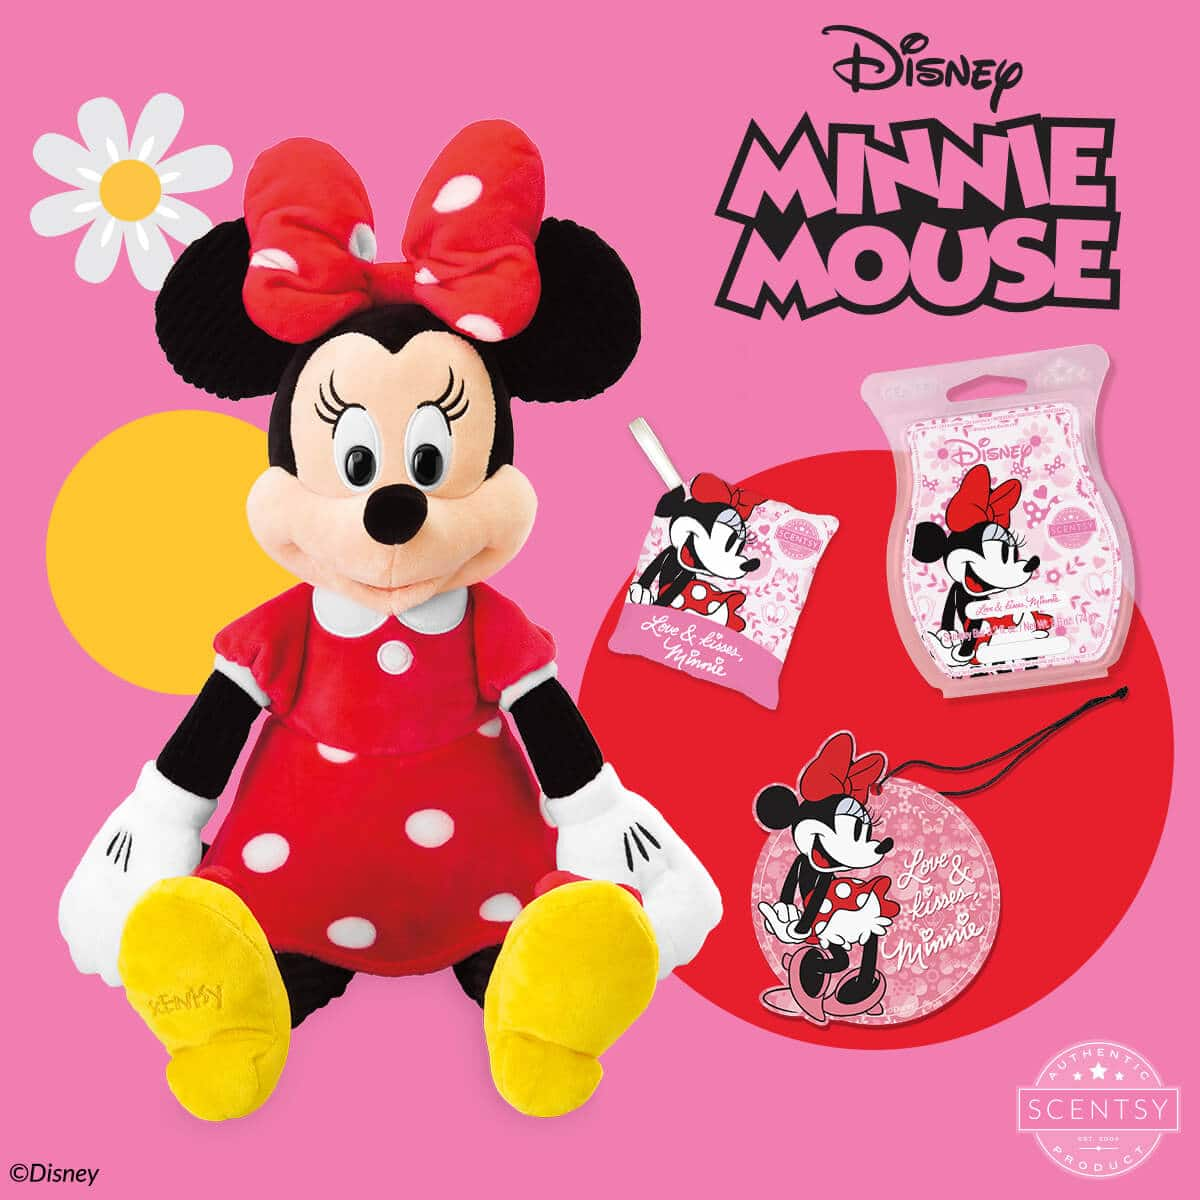 MINNIE MOUSE - SCENTSY BUDDY, LOVE & KISSES MINNIE - SCENTSY FRAGRANCE